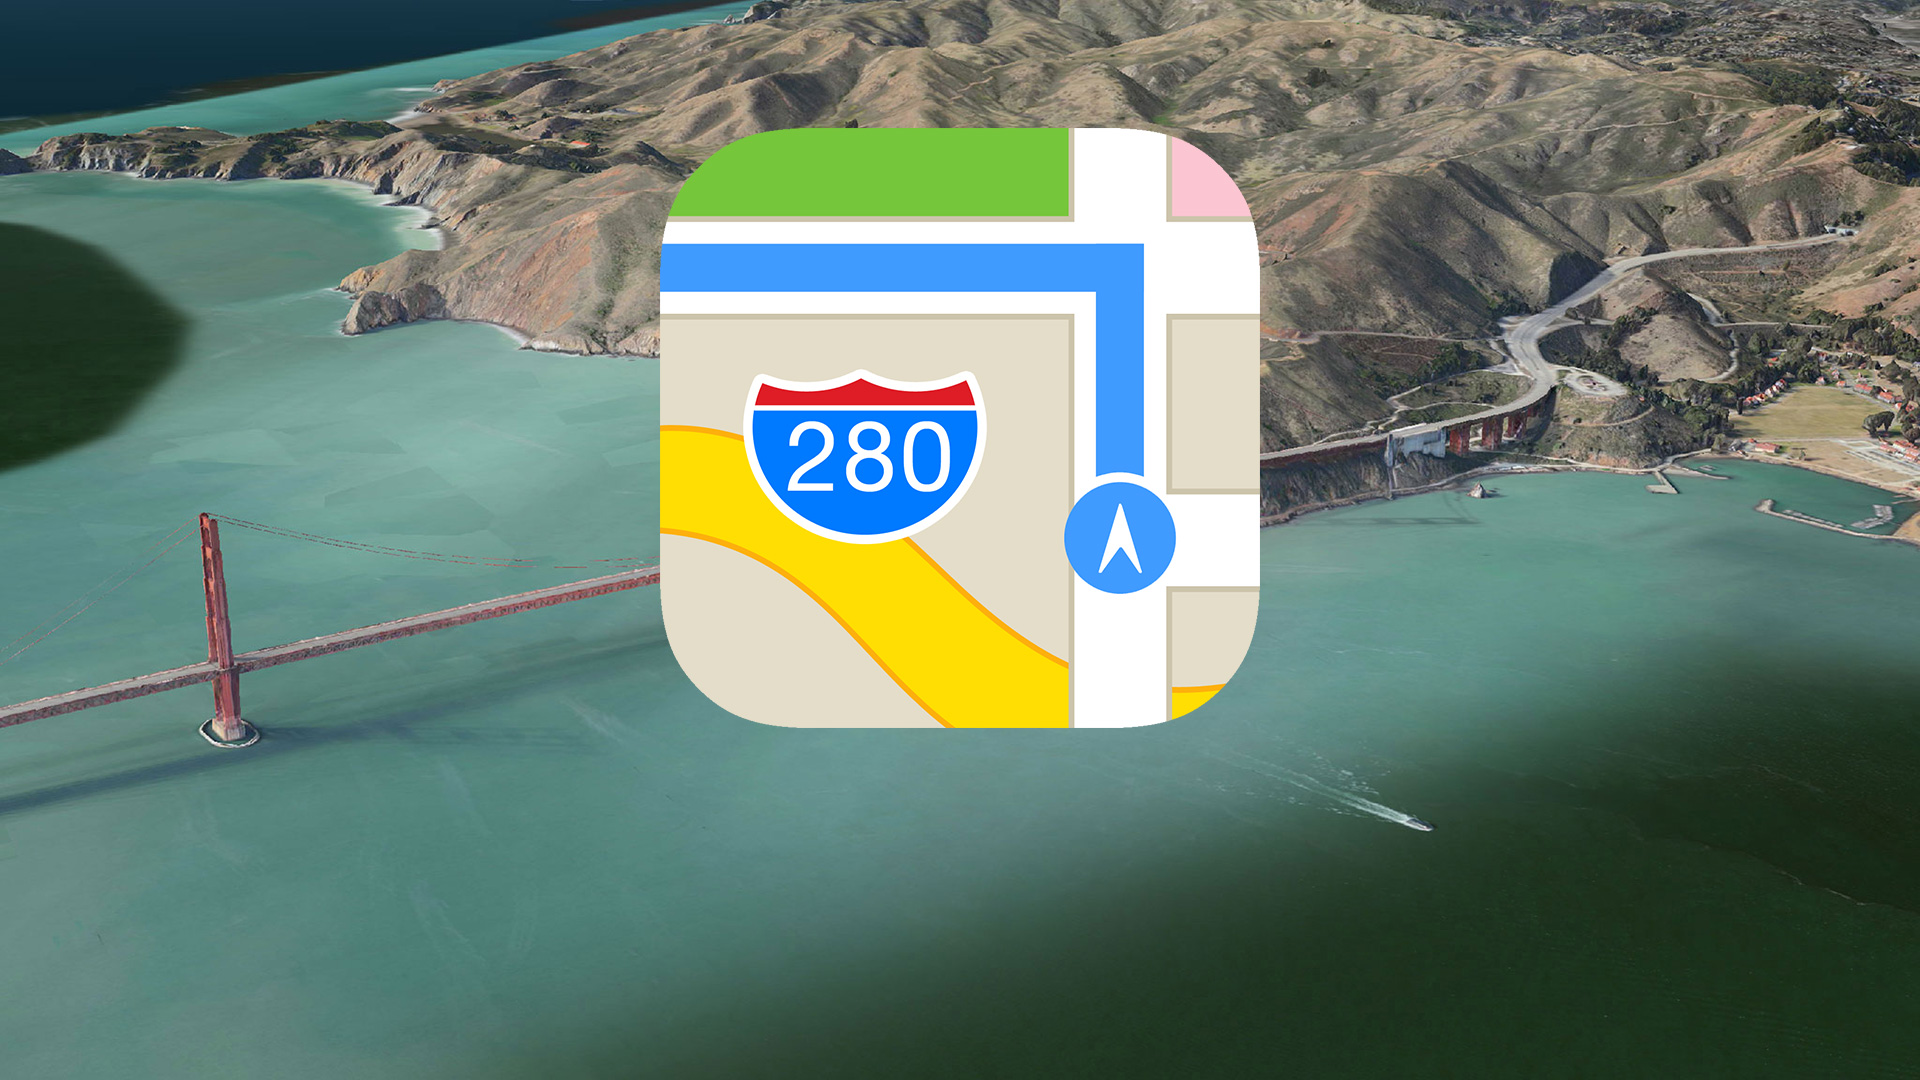 Apple maps can get out?